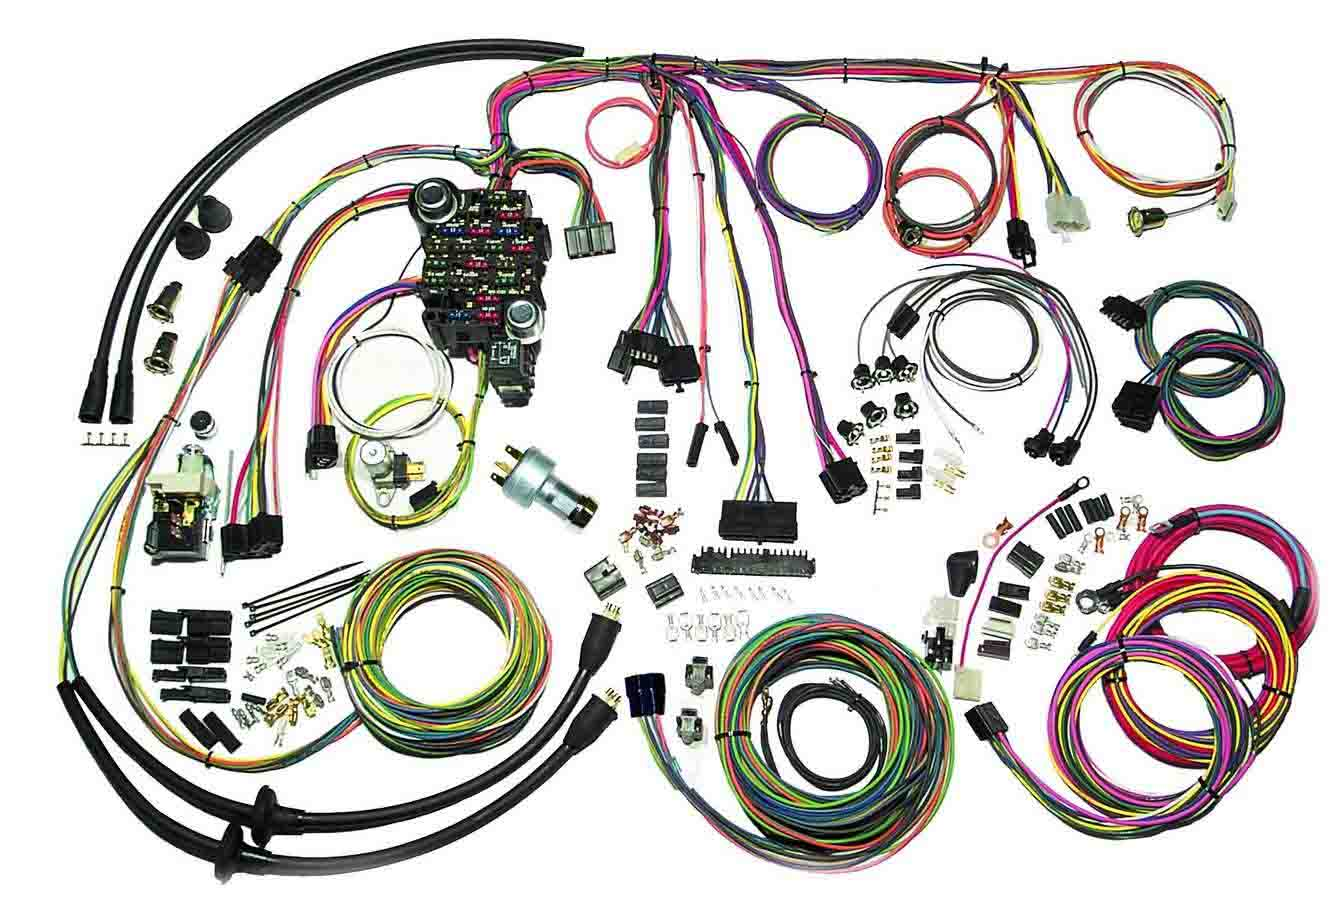 old car wiring harnesses schematic wiring diagram rh 20 adrew chamas naturatelier de vintage auto wiring diagrams